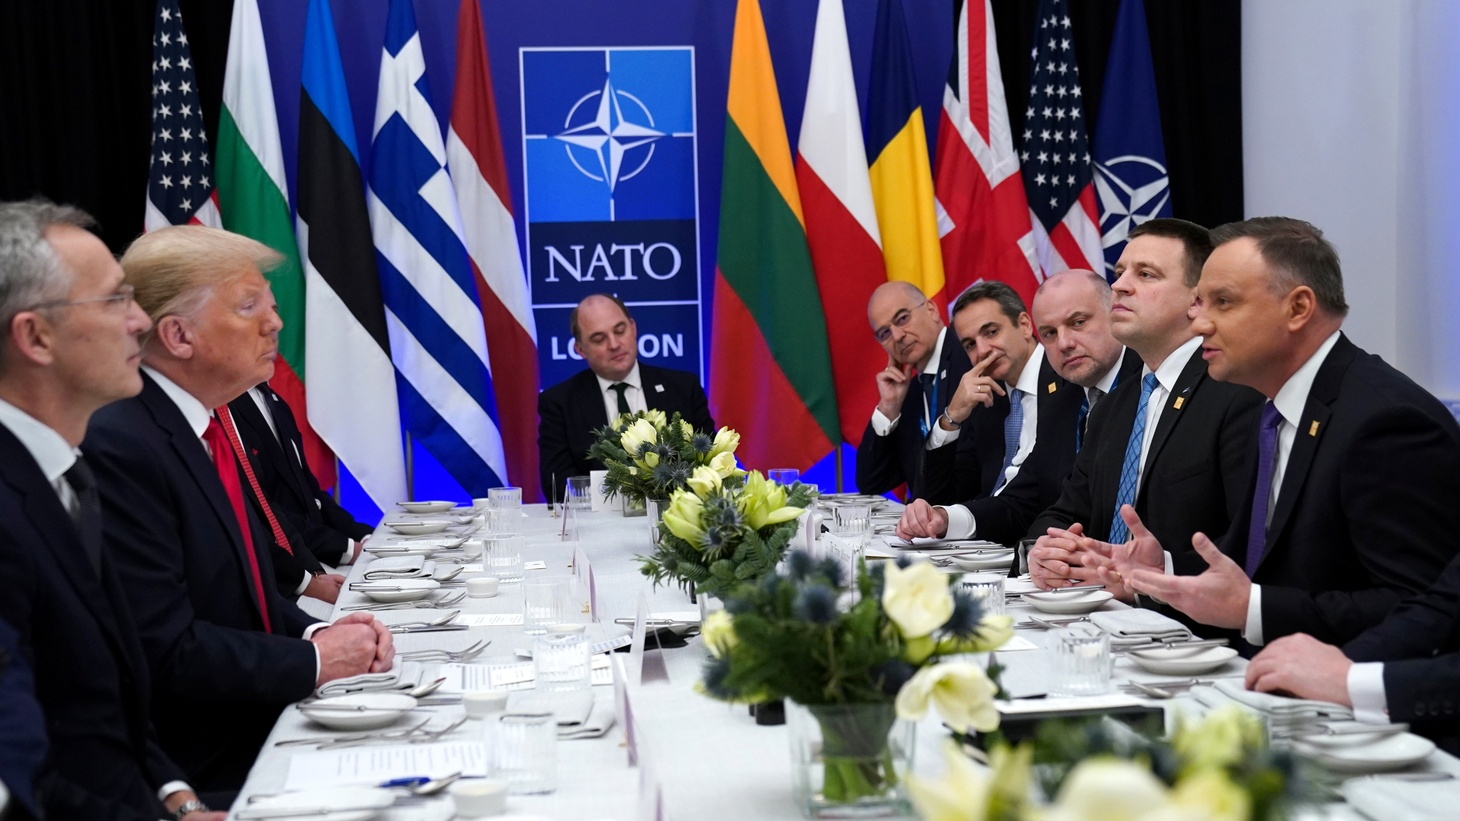 NATO Secretary General Jens Stoltenberg looks on as U.S. President Donald Trump and Poland's President Andrzej Duda talk during a working lunch during the NATO leaders summit in Watford, Britain, December 4, 2019.